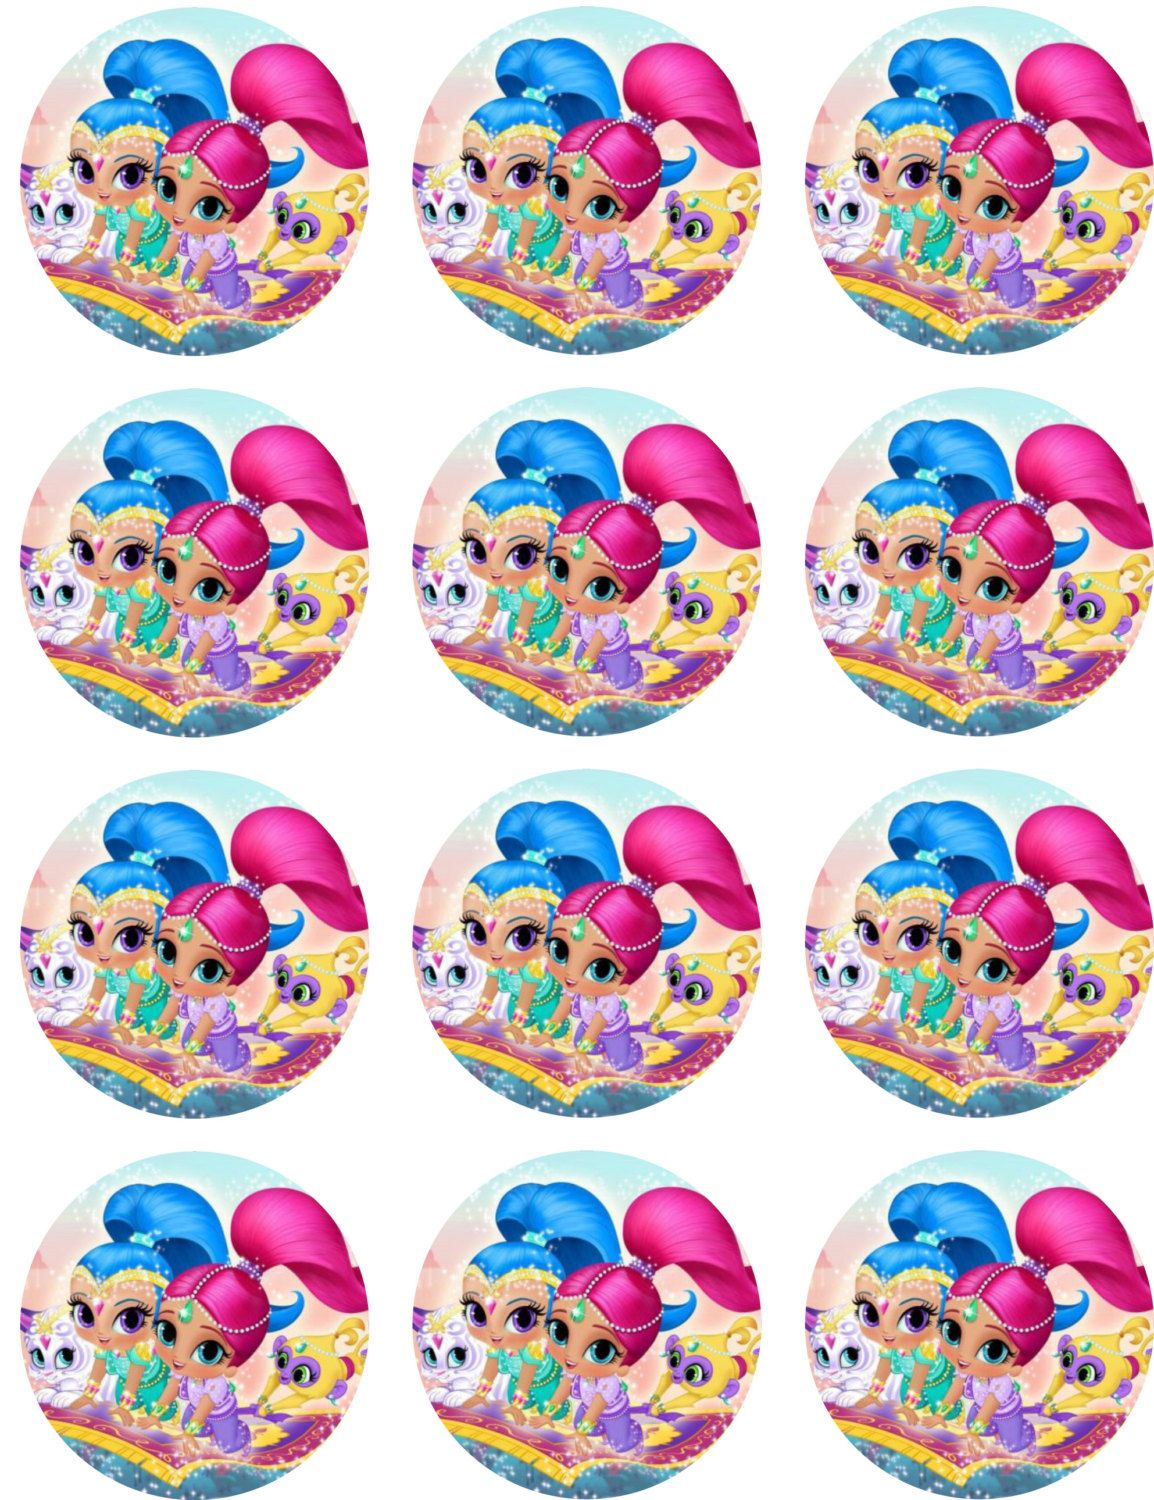 Shimmer Shine Shimmer Shine Characters Birthday Cake Toppers